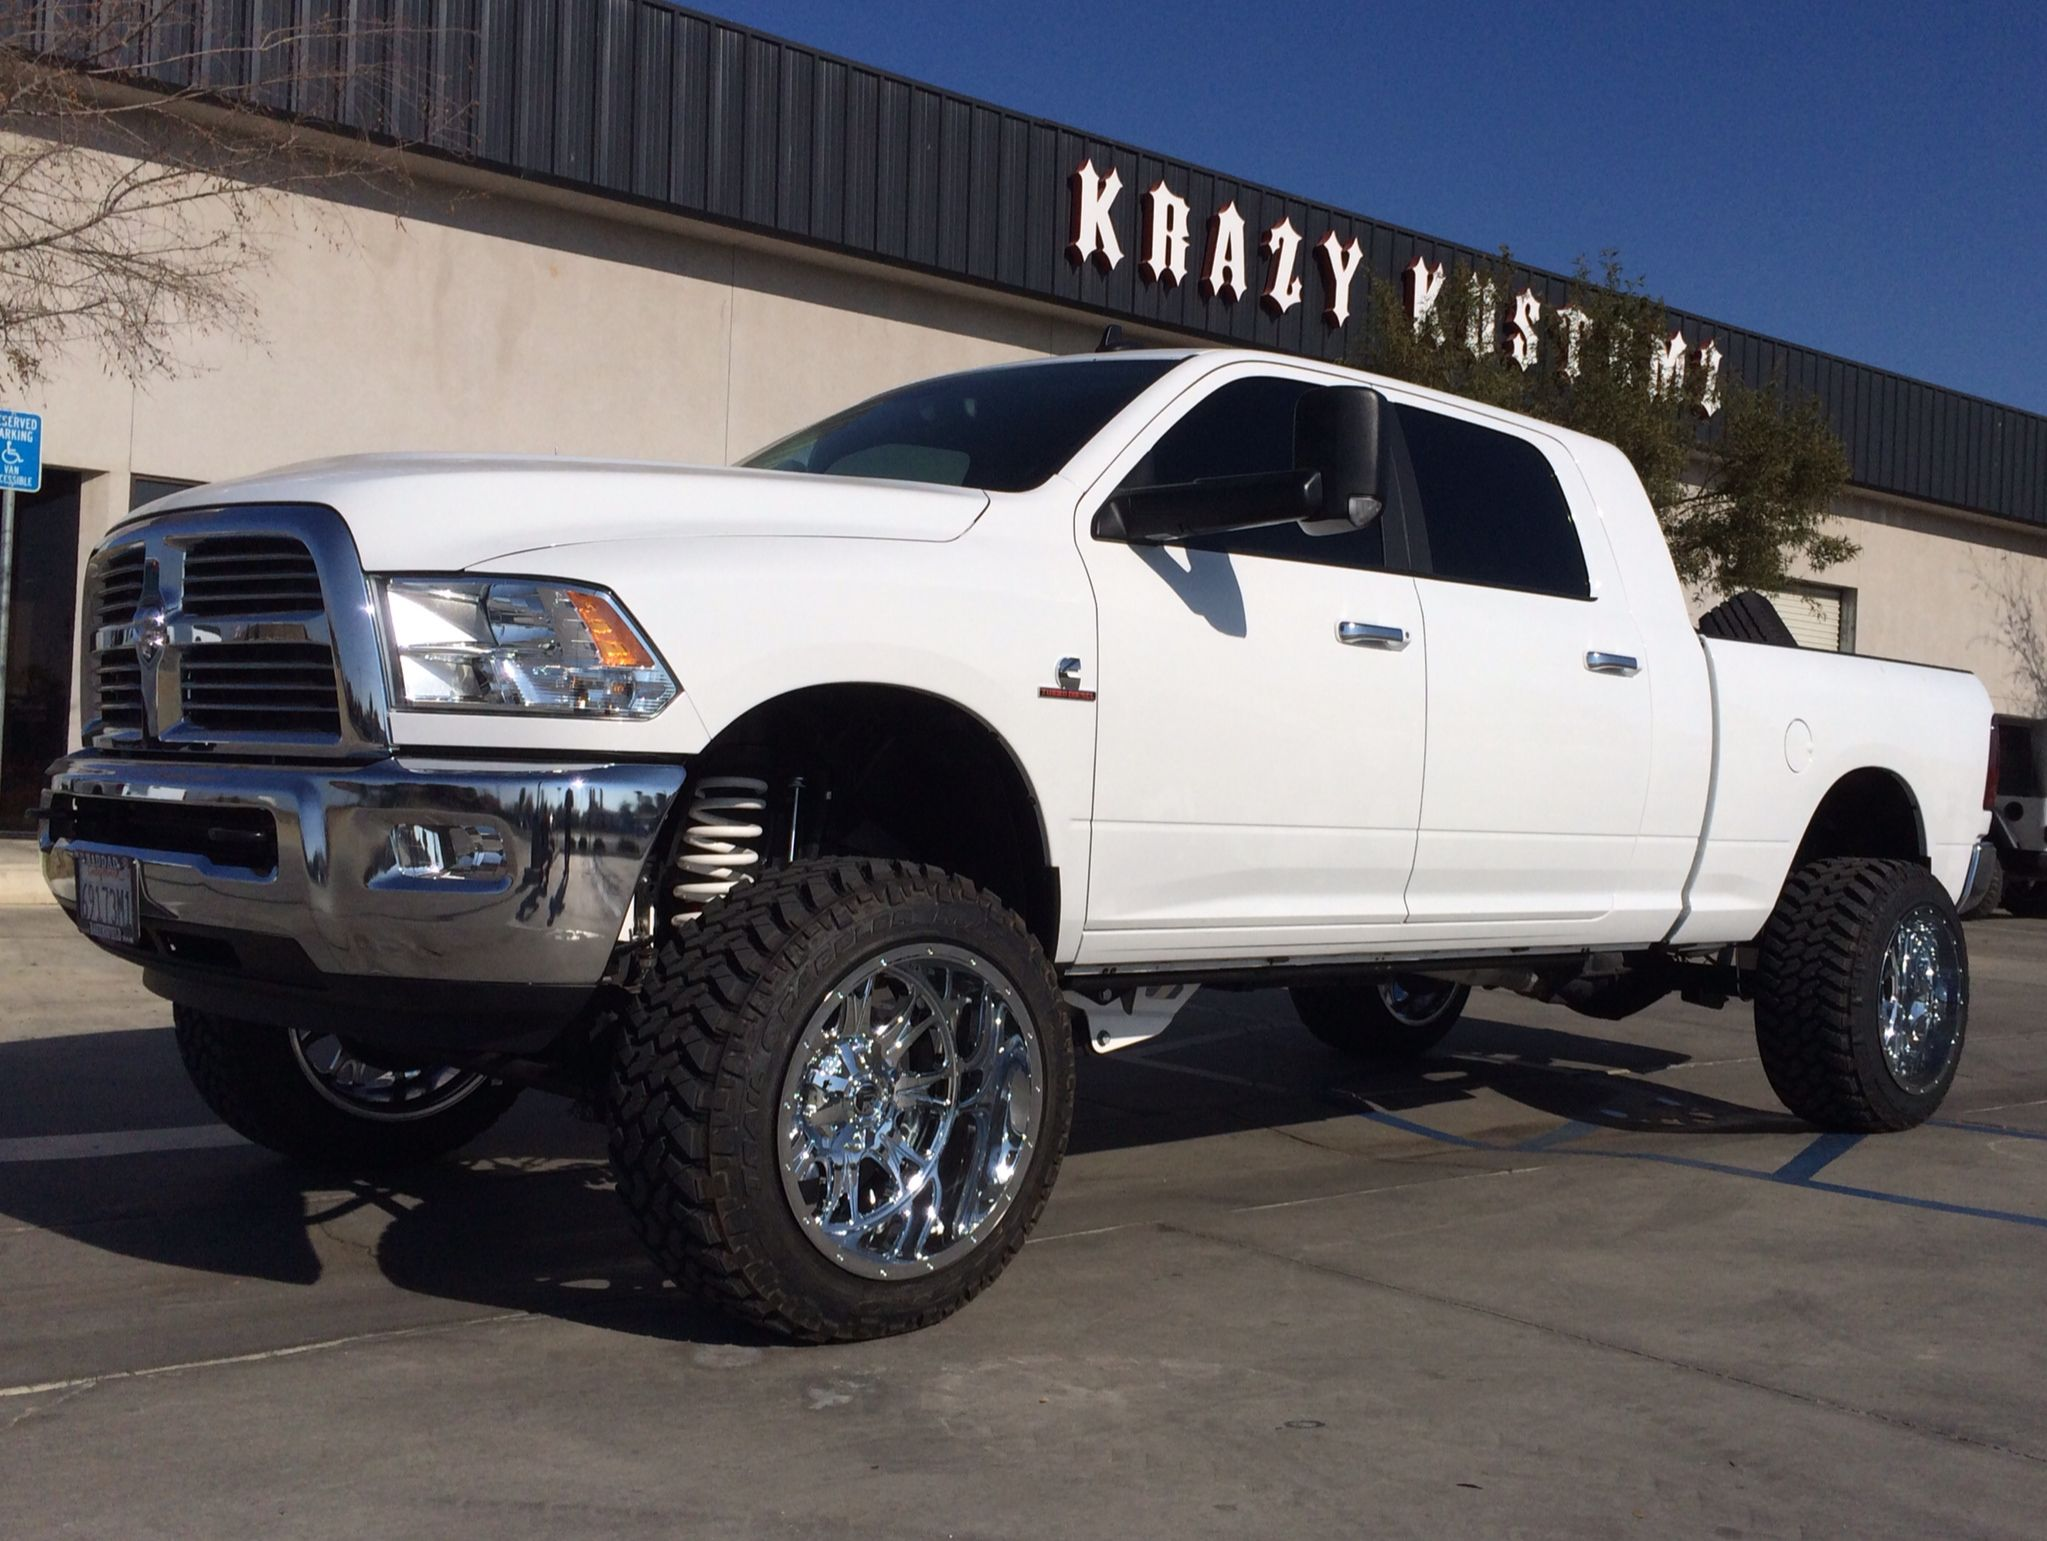 1000 images about dodge ram on pinterest 4x4 trucks for sale dodge ram trucks and trucks